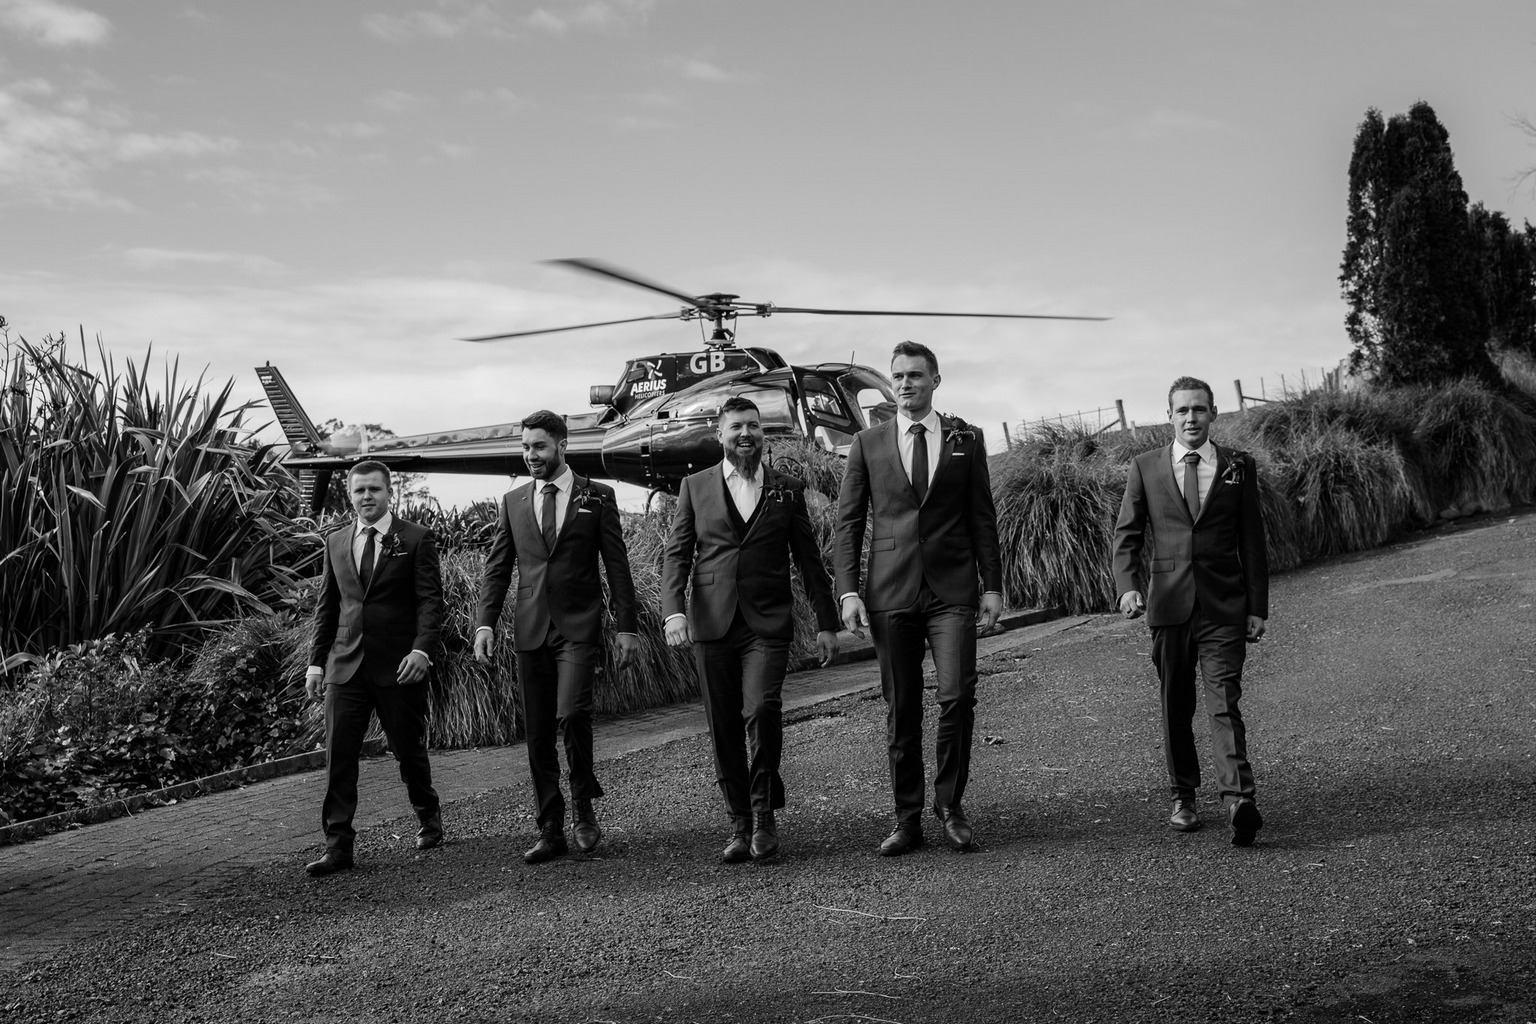 Groomsman arriving to a wedding in a helicopter